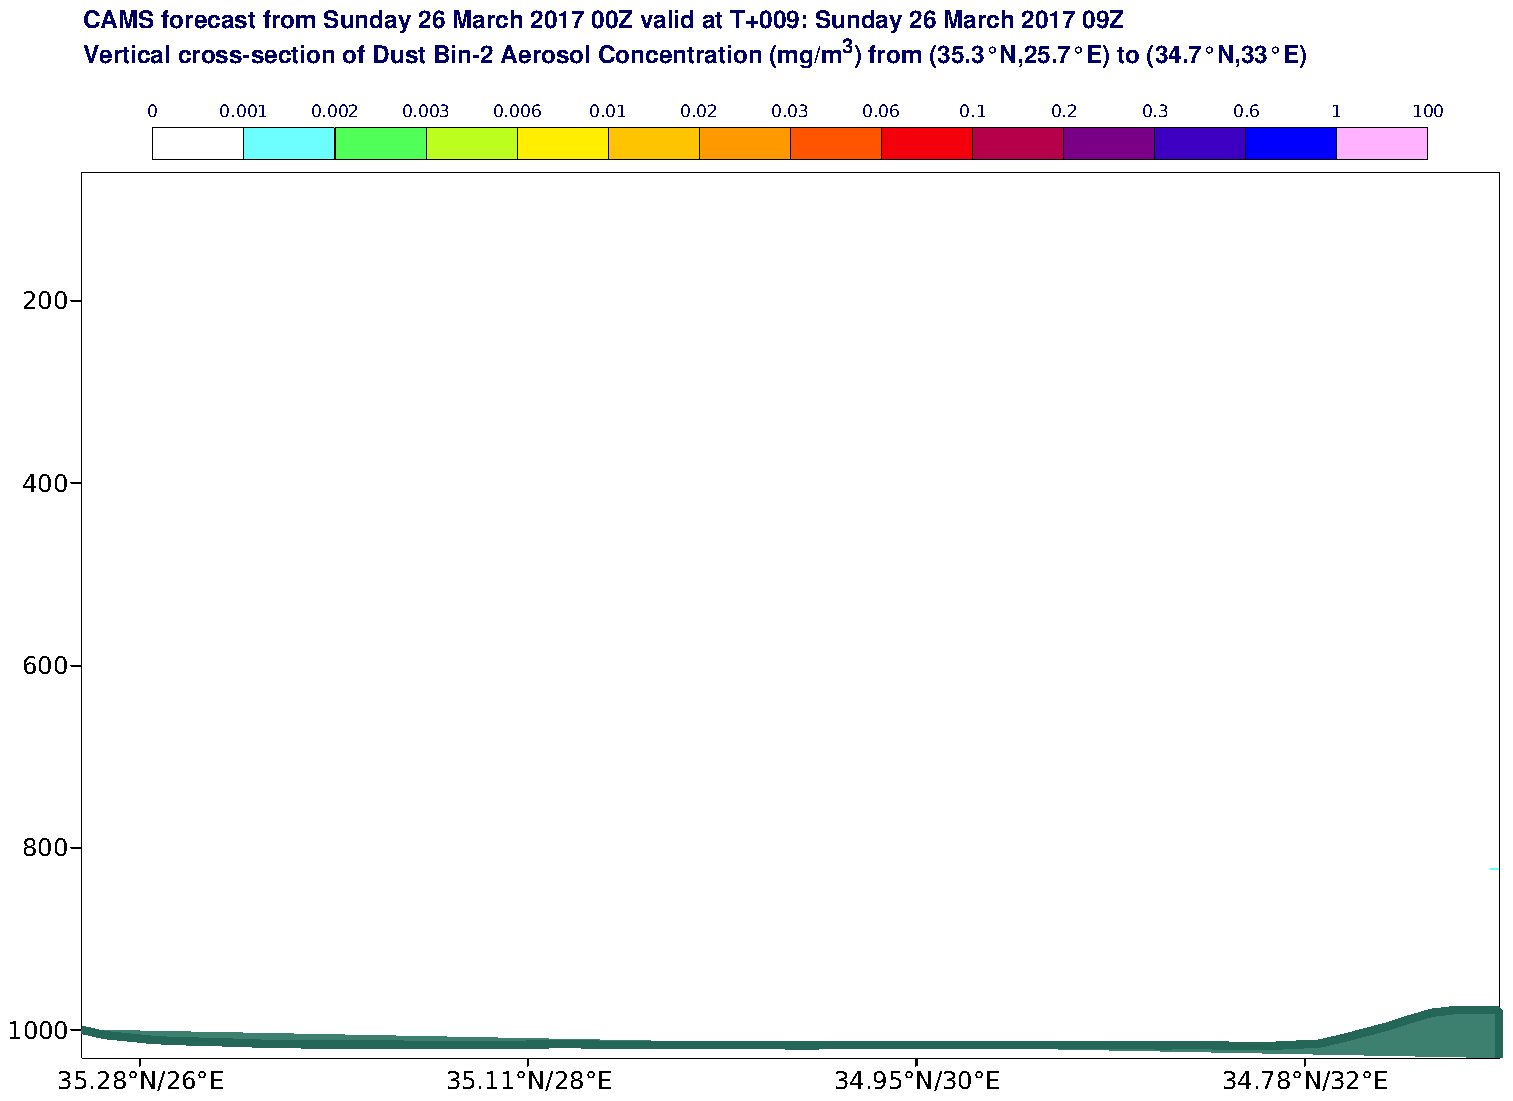 Vertical cross-section of Dust Bin-2 Aerosol Concentration (mg/m3) valid at T9 - 2017-03-26 09:00